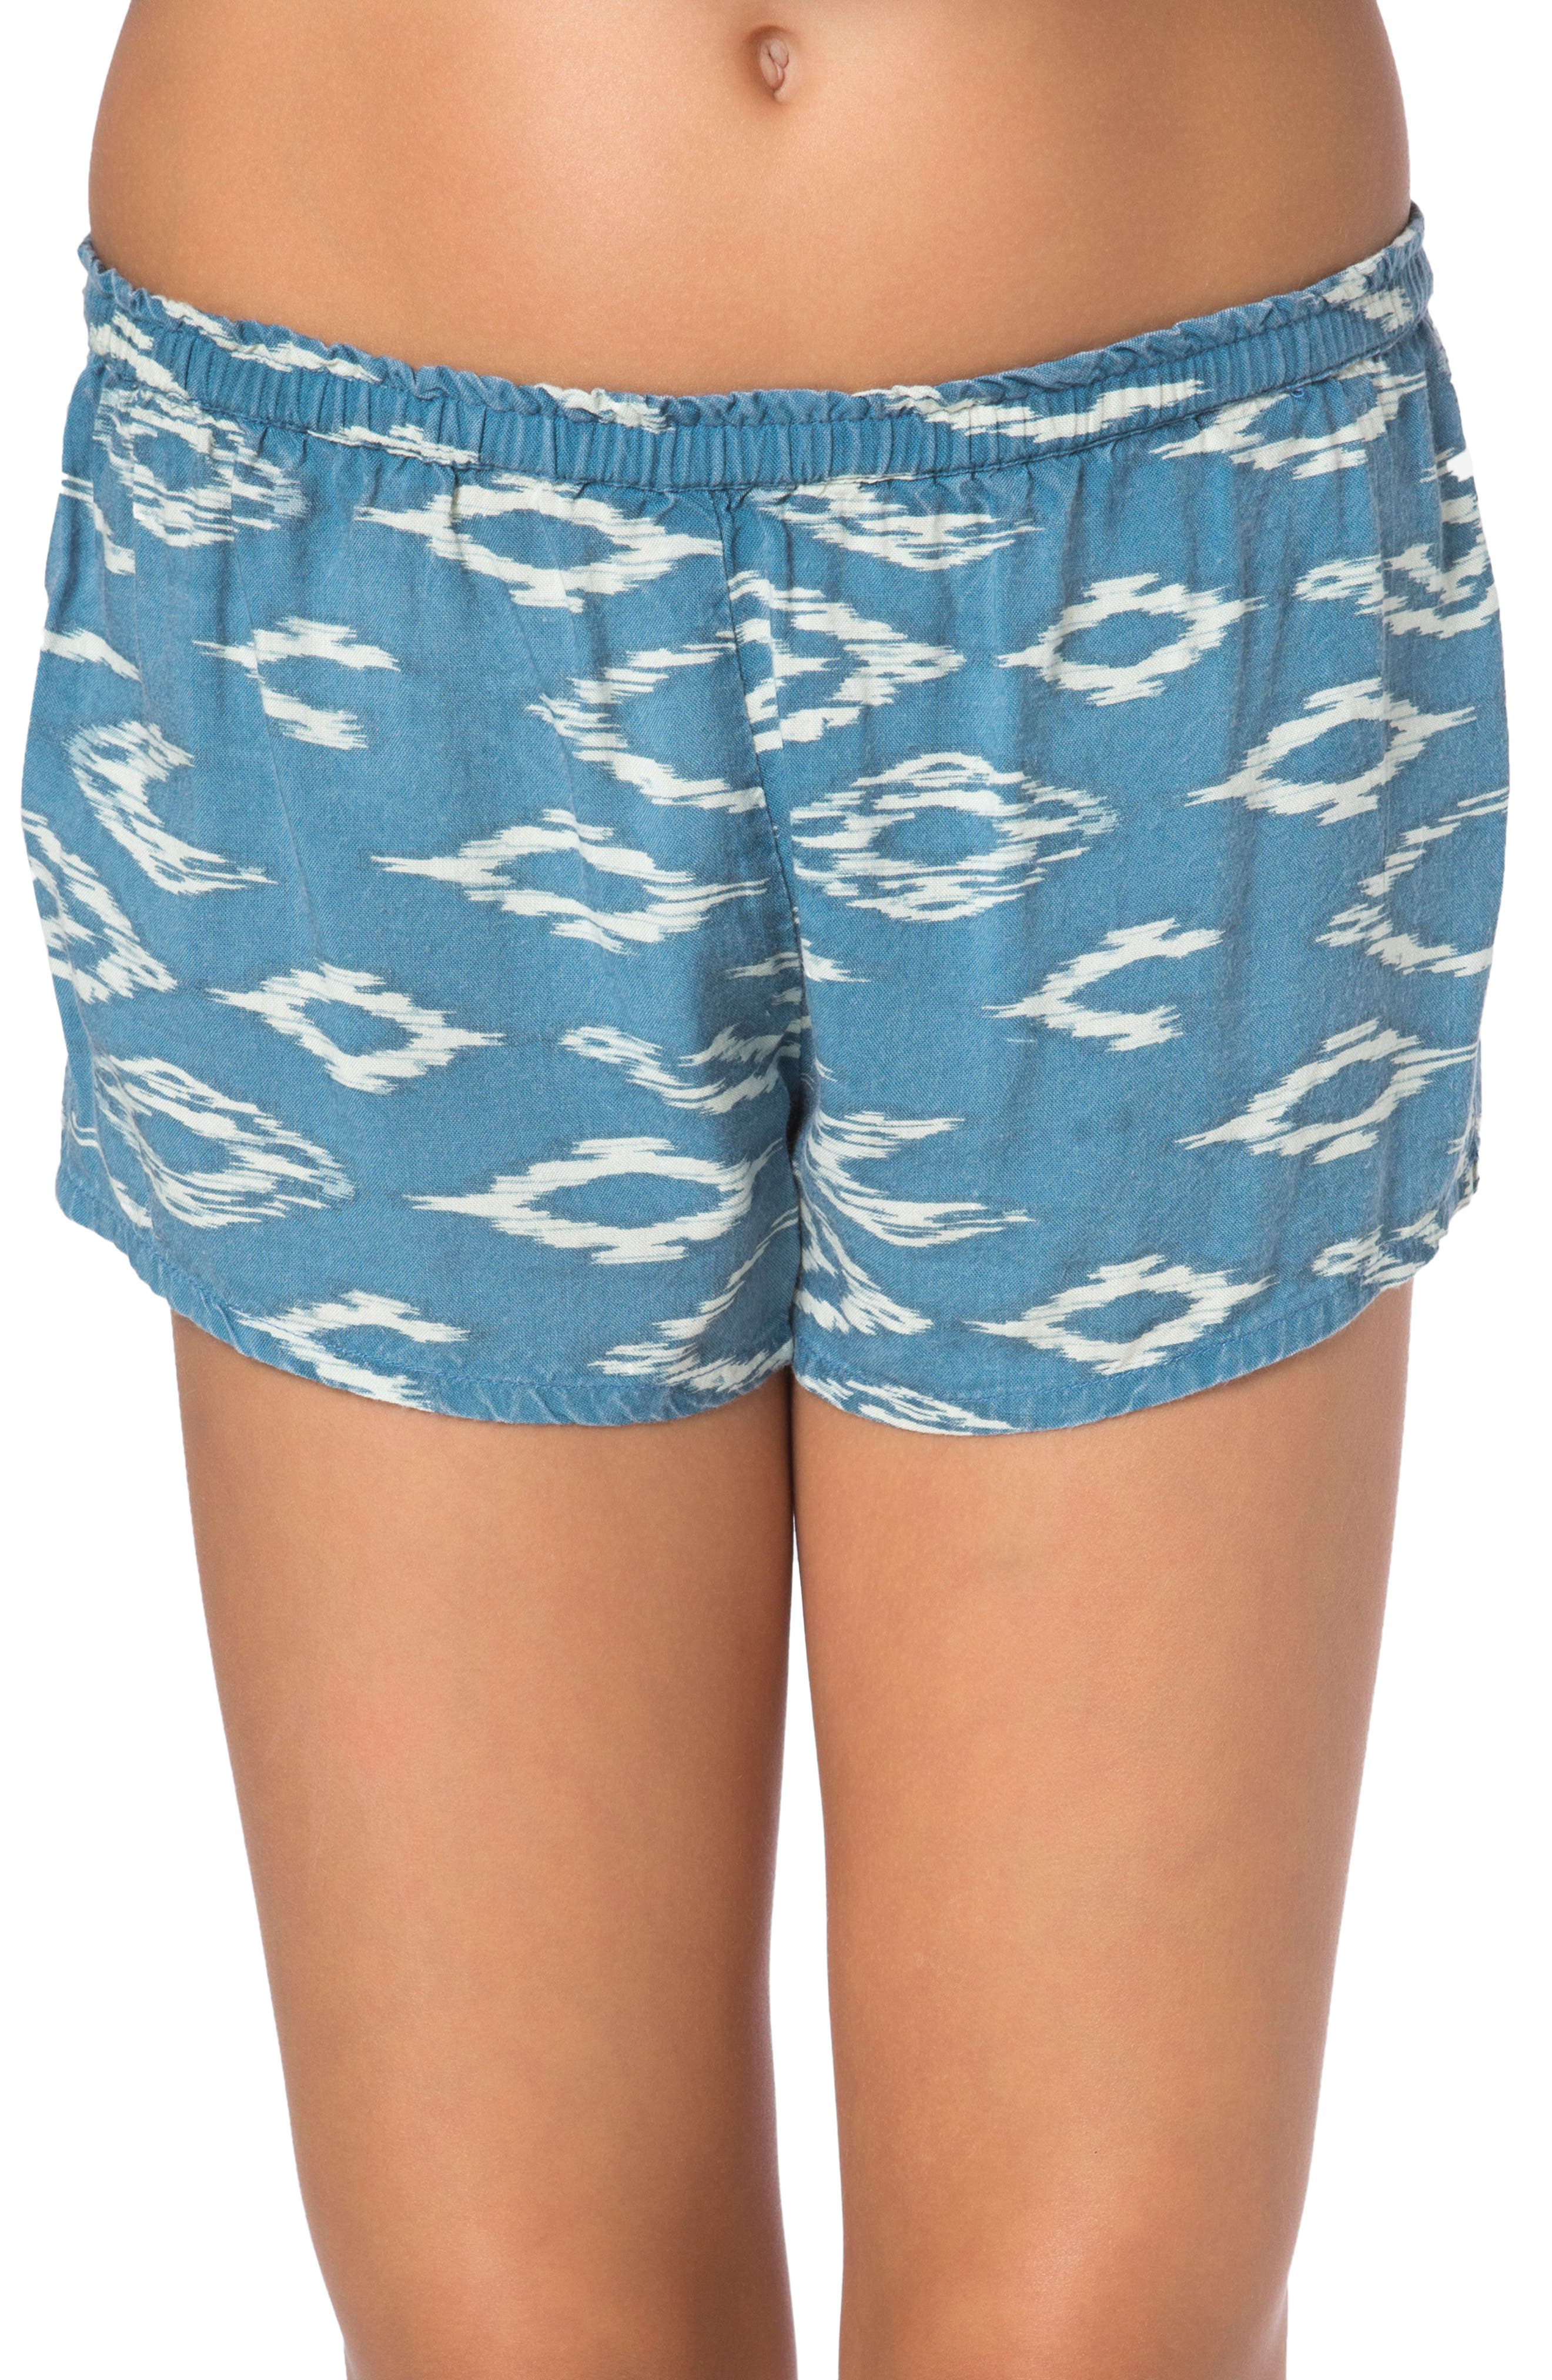 Alternate Image 1 Selected - O'Neill Sonnie Shorts (Big Girls)